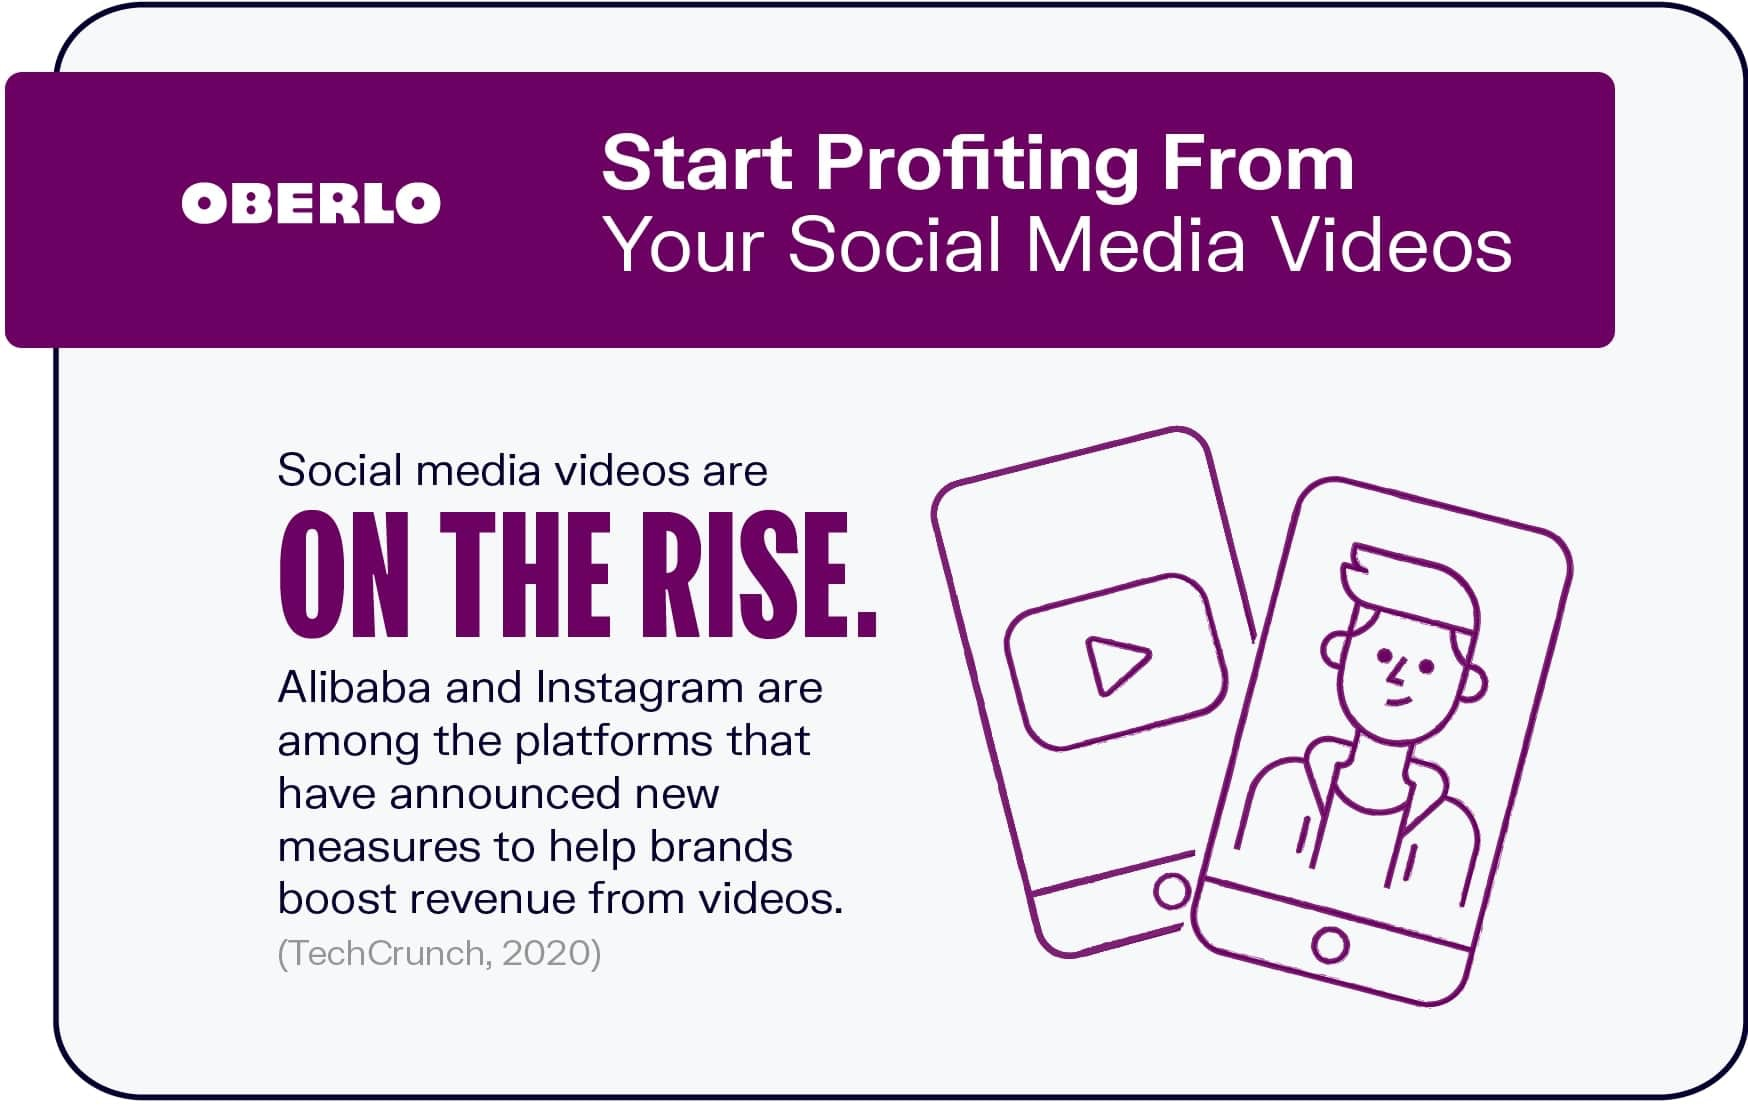 Start Profiting From Your Social Media Videos